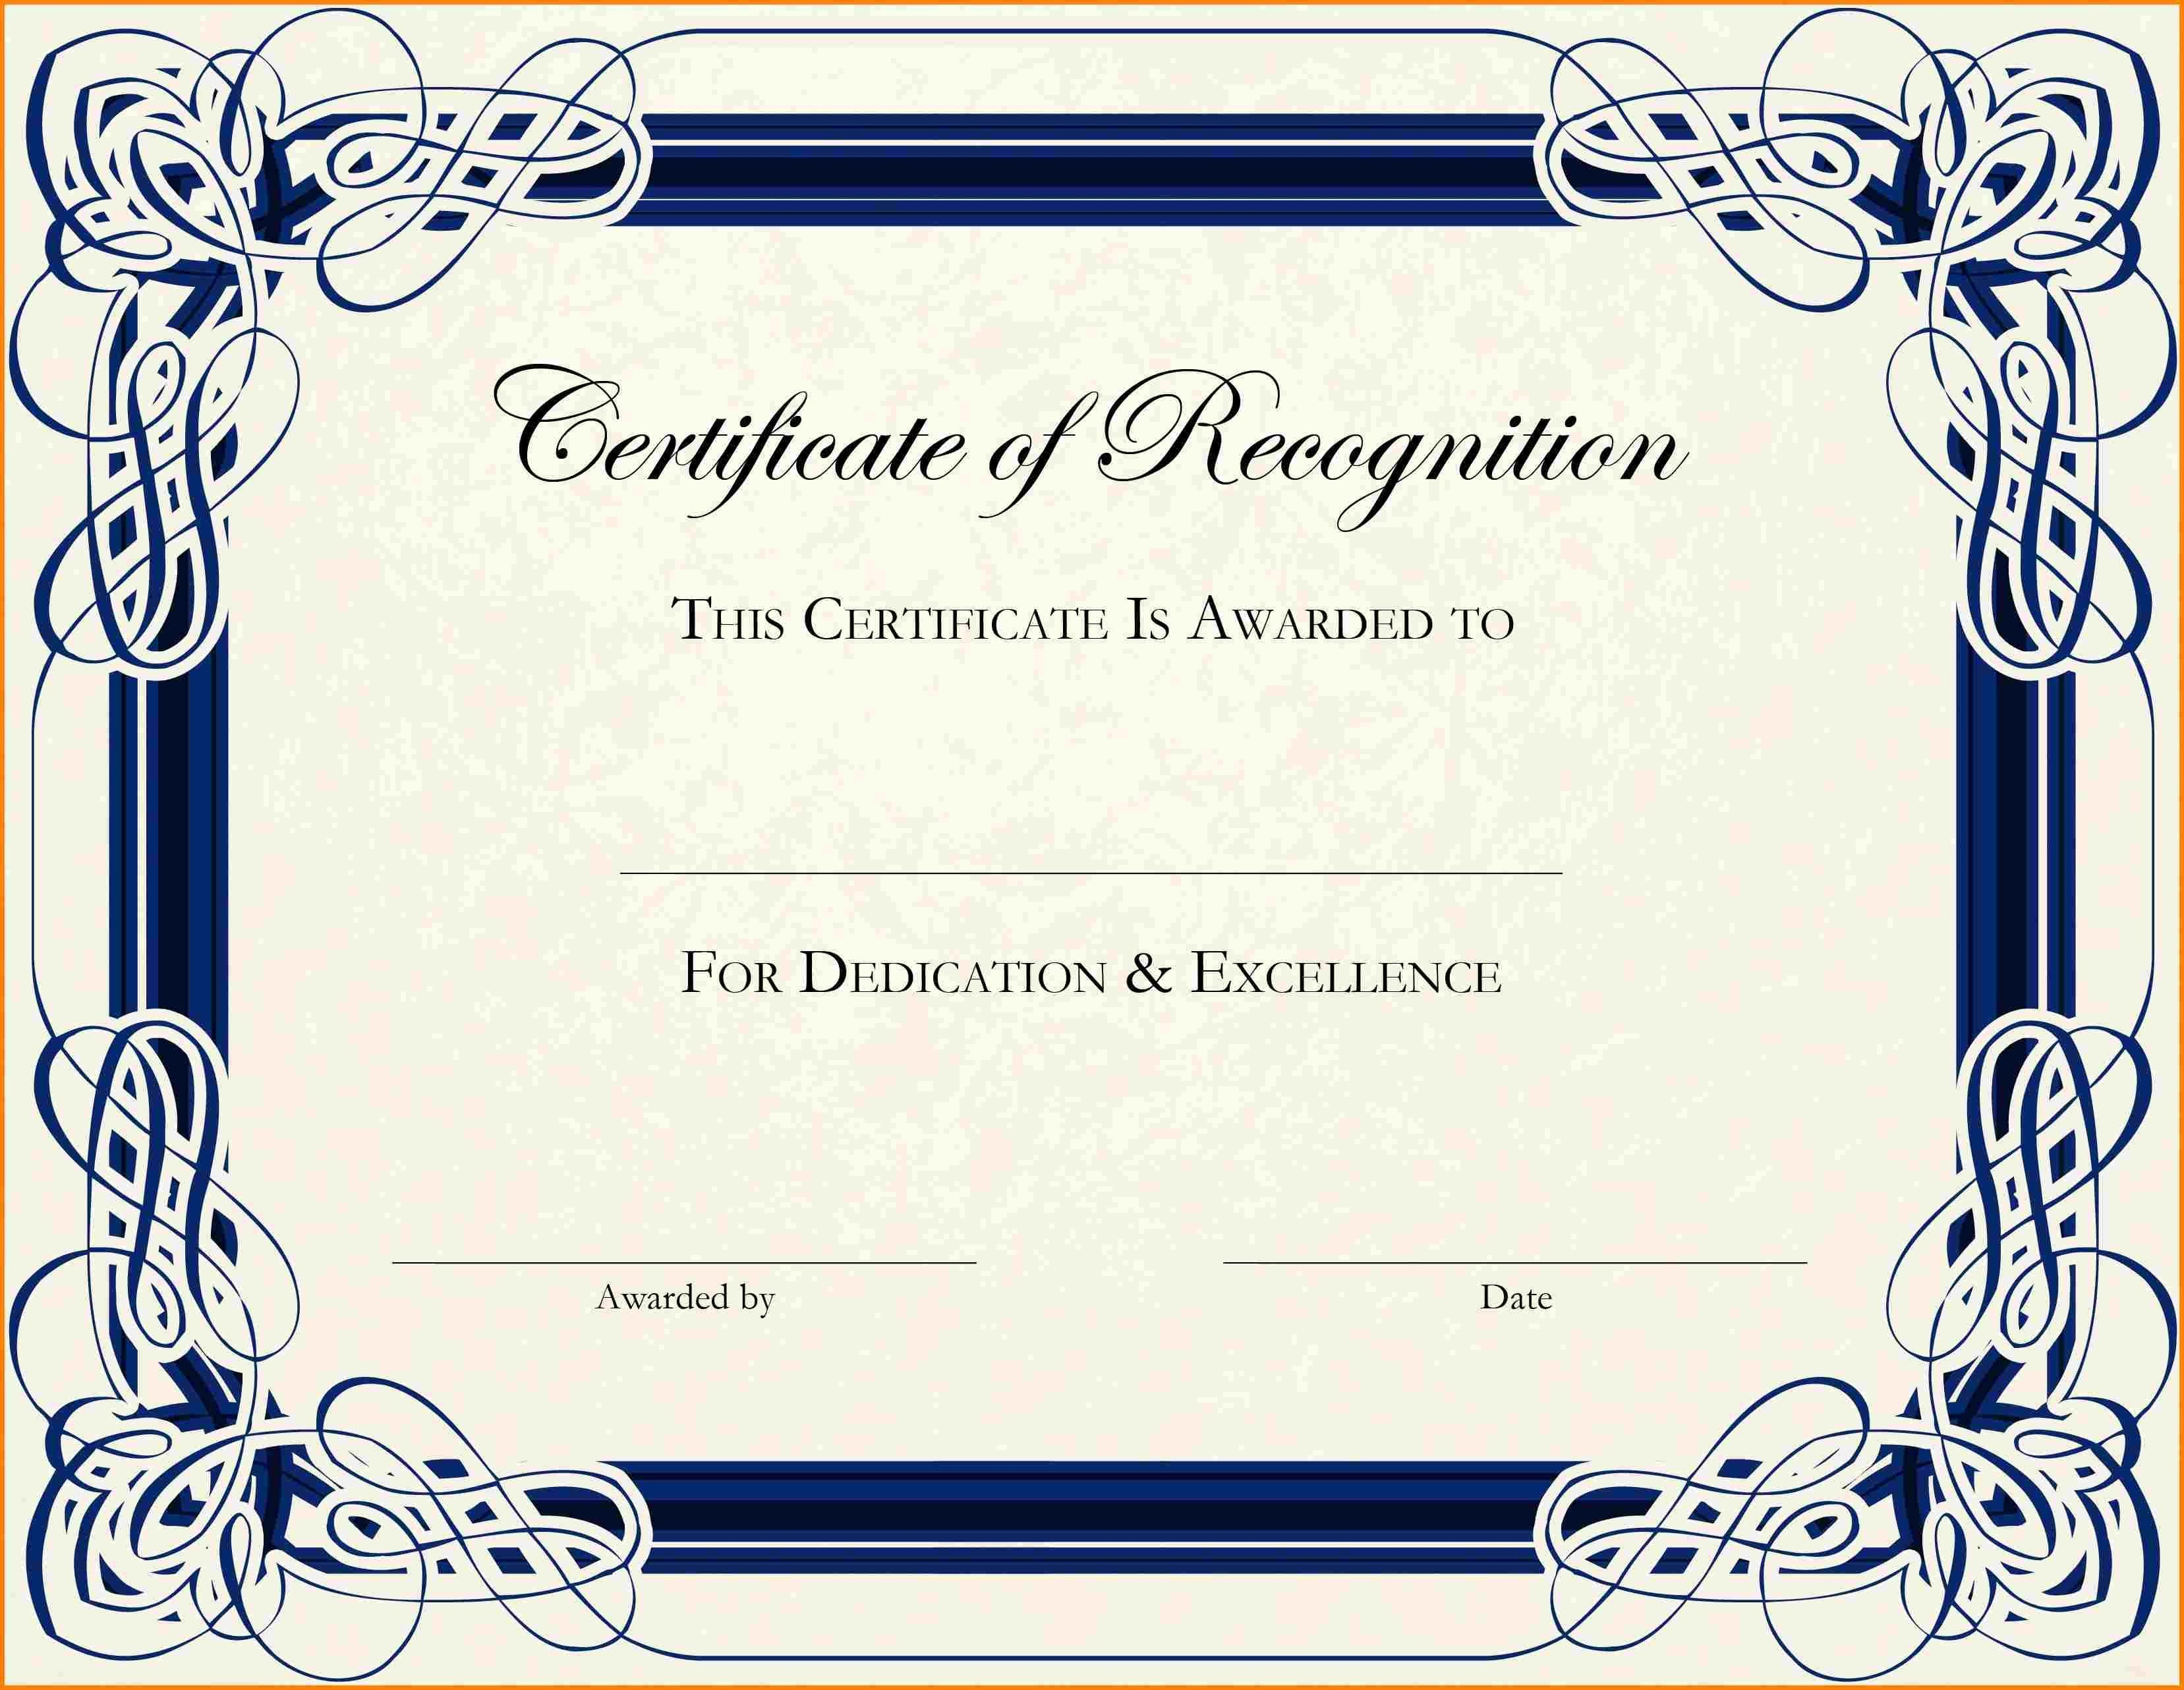 Free Printable Certificate Border Templates  Sample Of Invoice With Certificate Border Design Templates